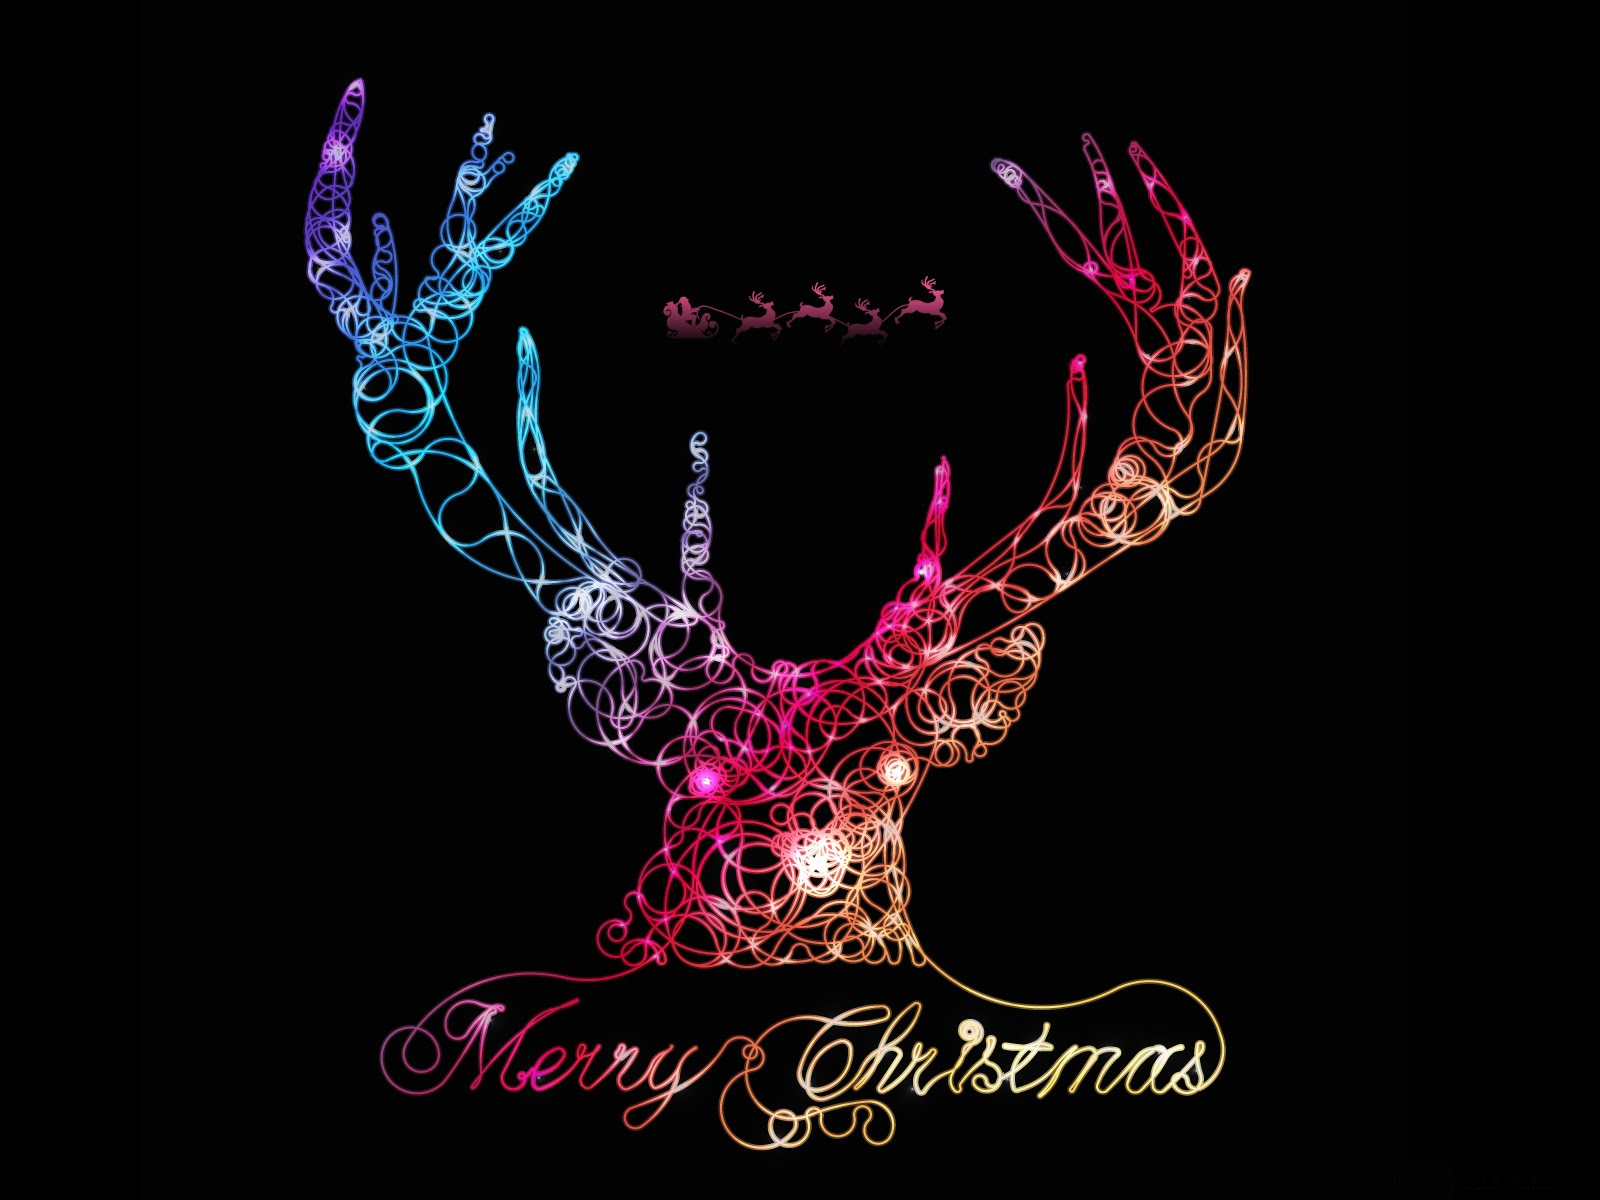 Merry Christmas Wallpaper 2014 Desktop Free Download Poetry About Wishes Festivals